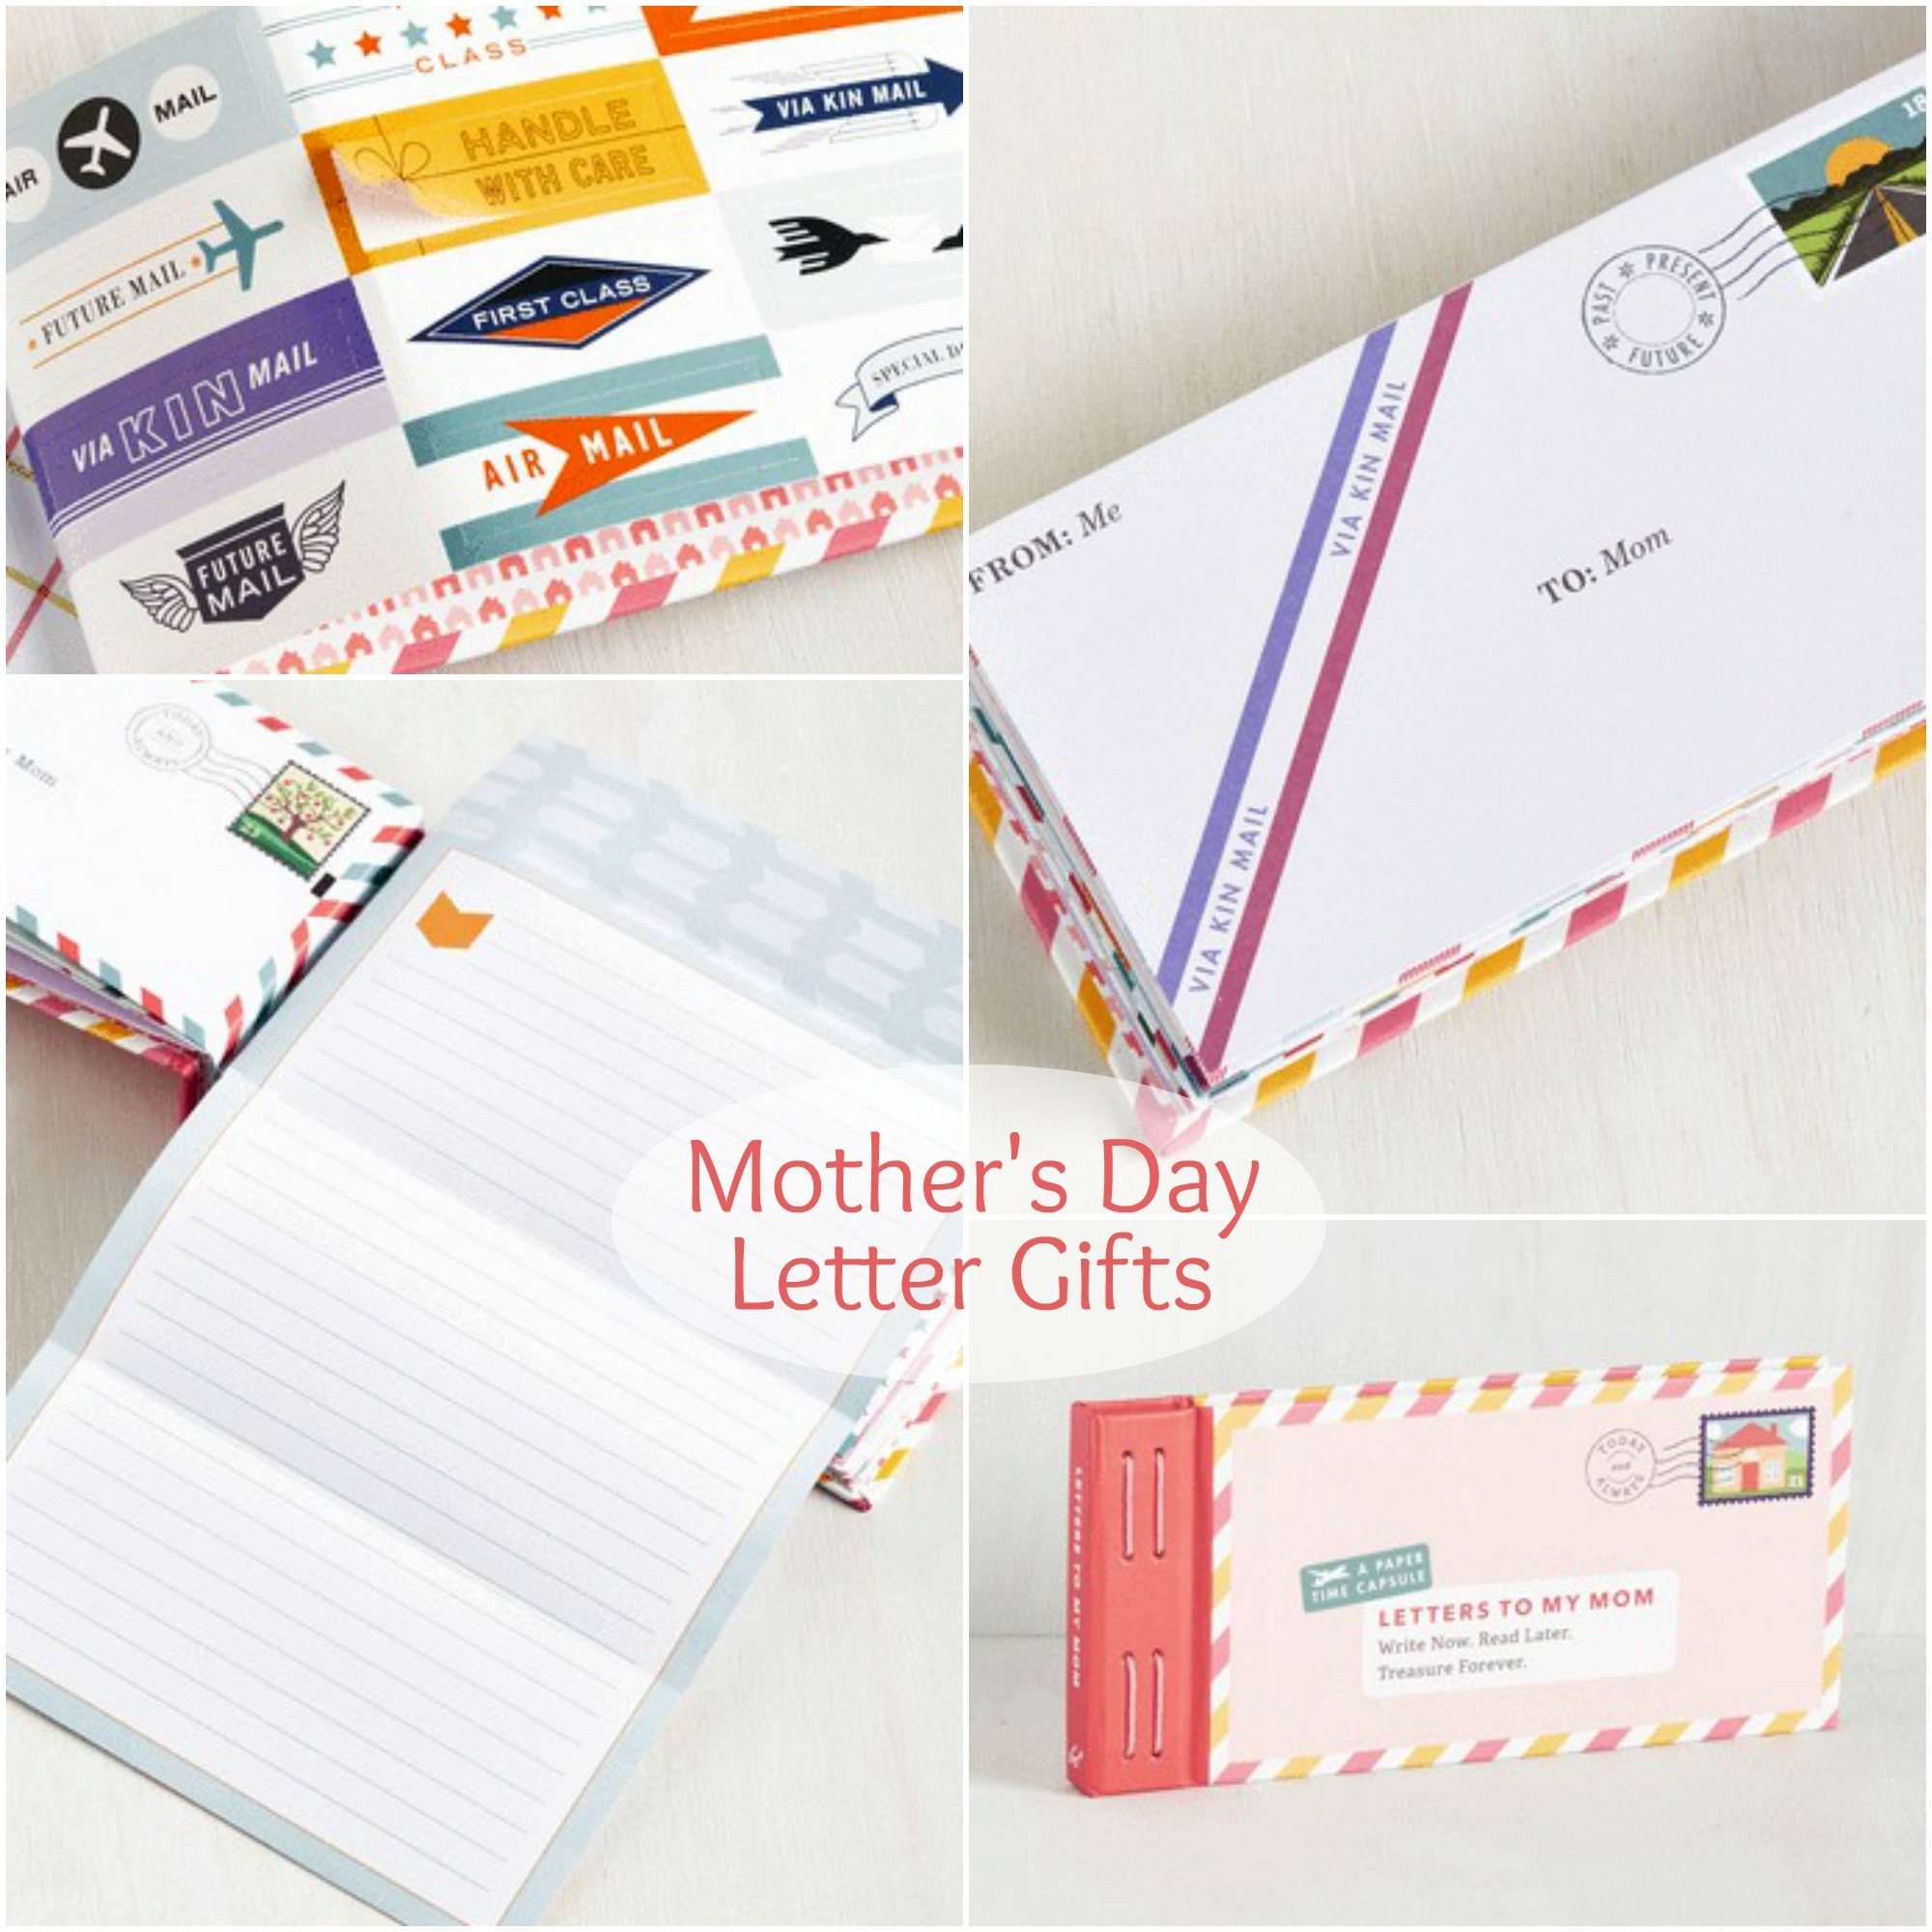 Mom'S Gift Guide - Beauty Through Imperfection